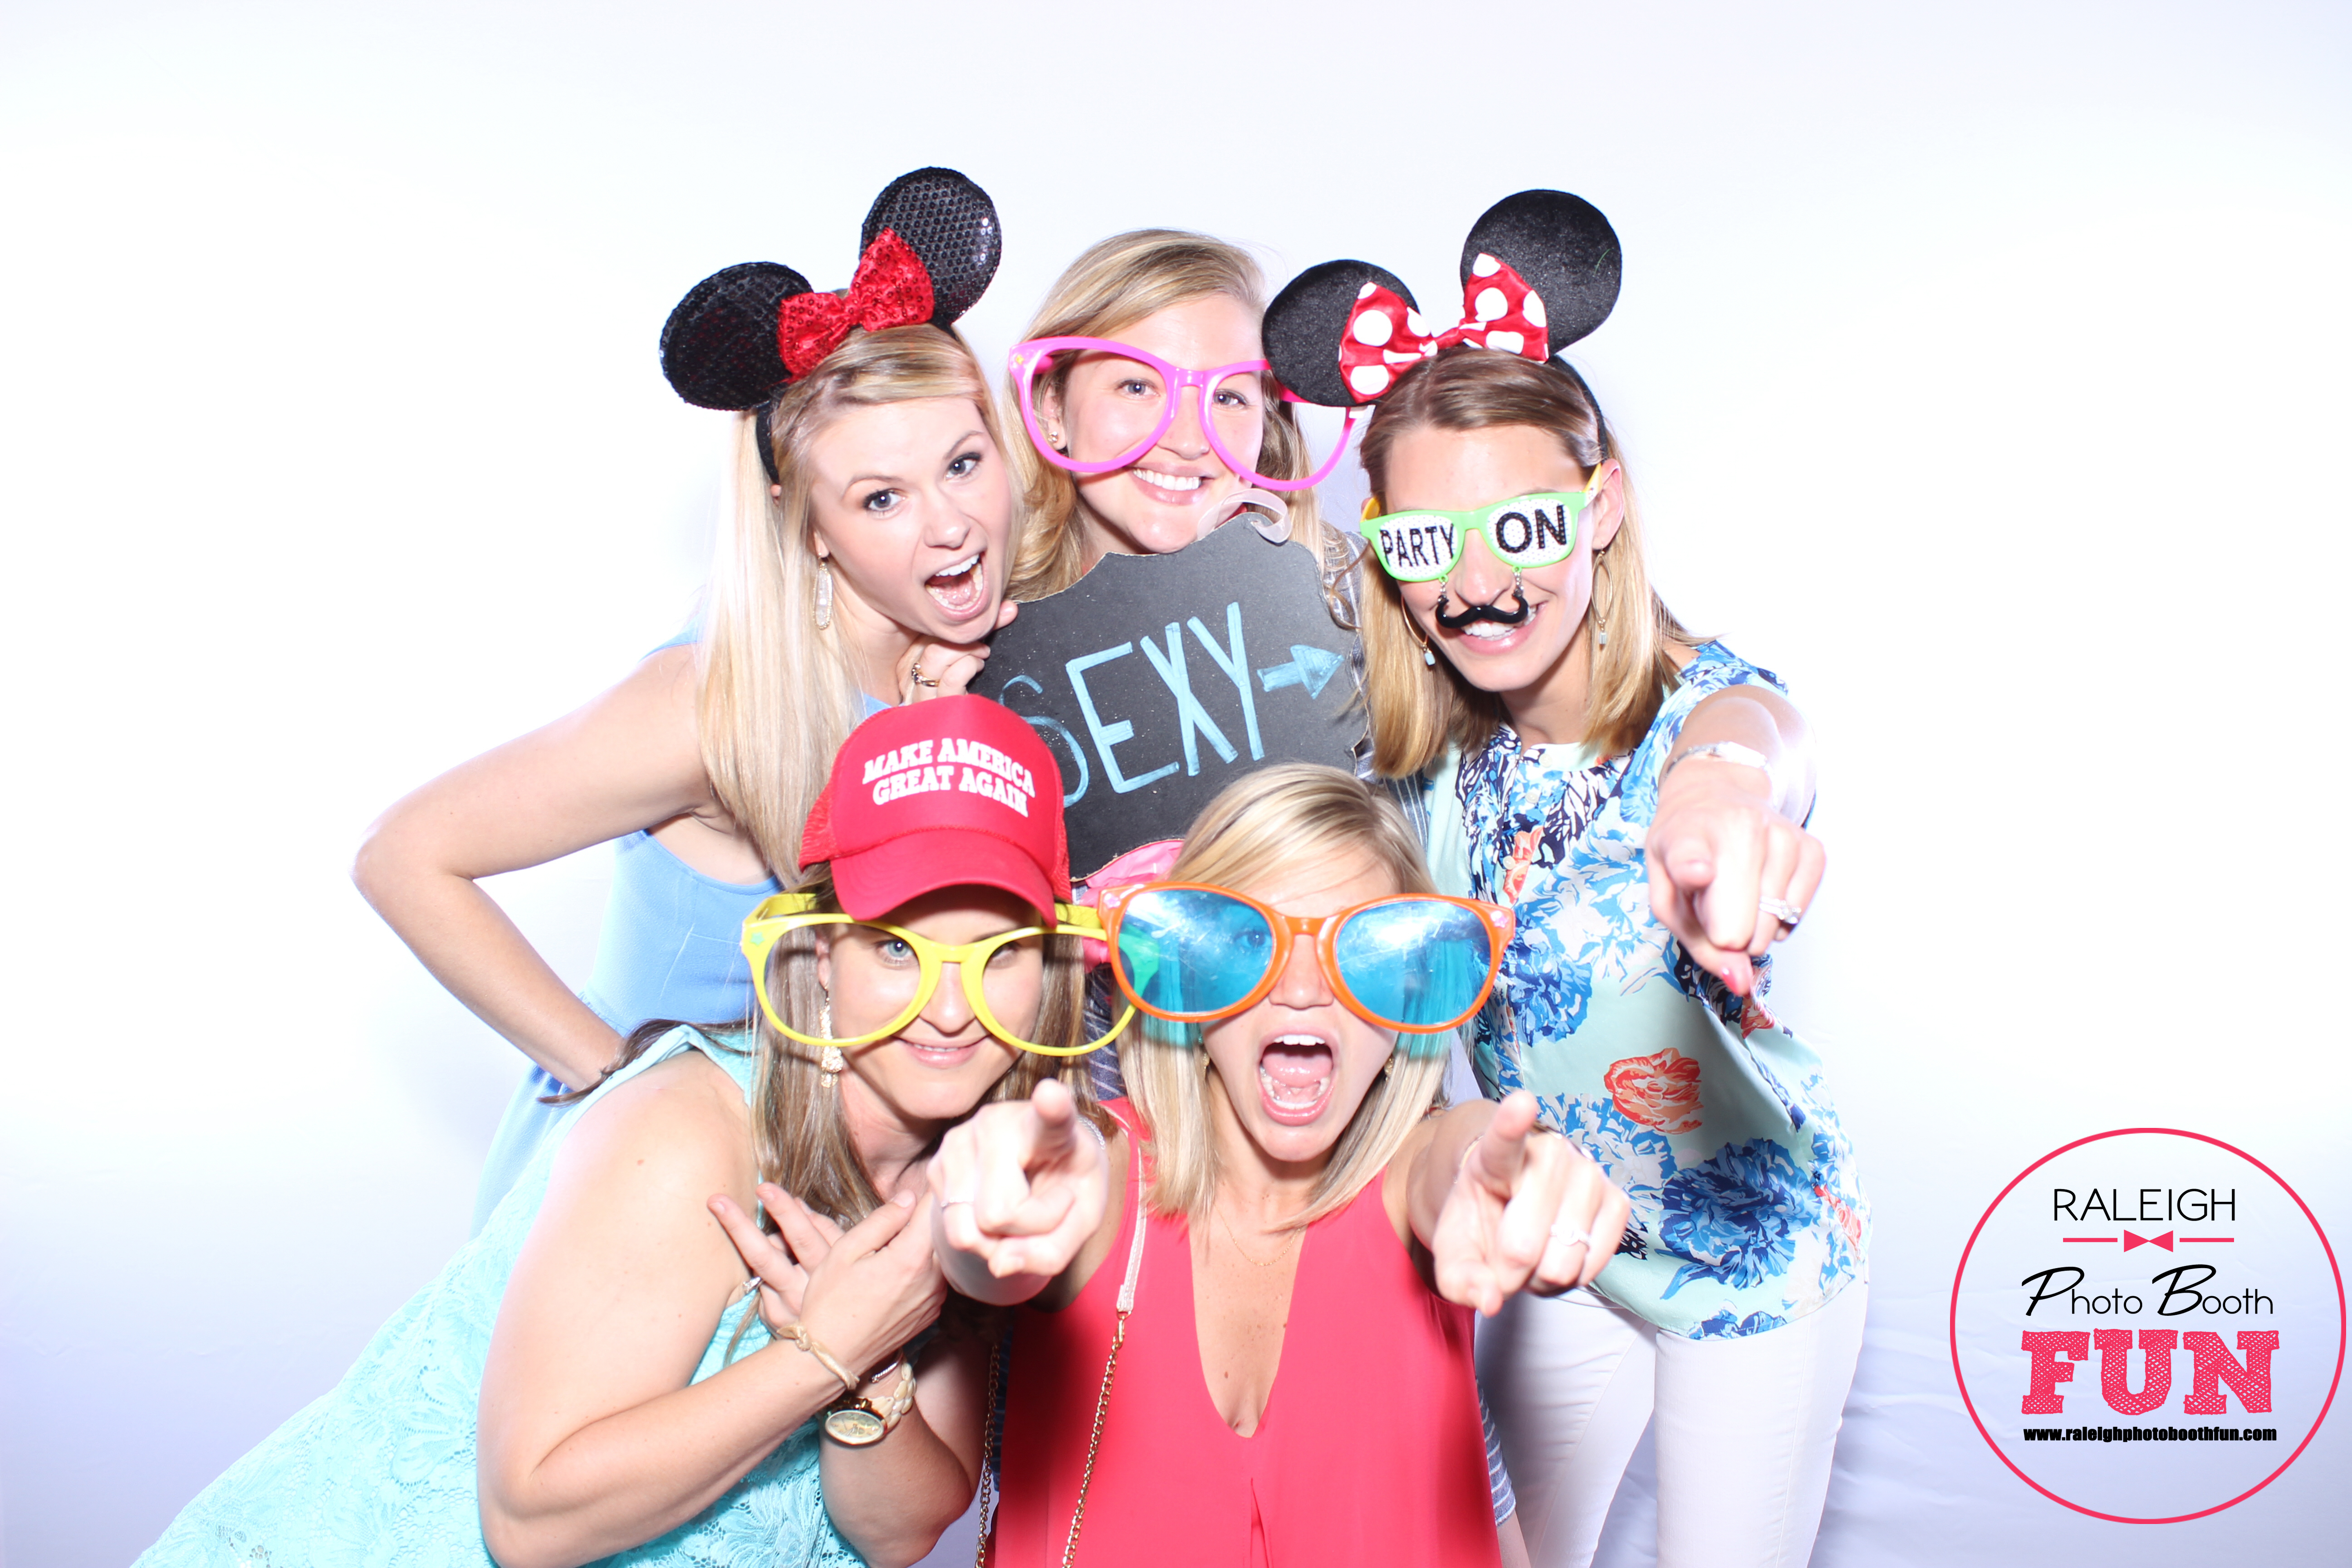 white backdrop photo booth rental Raleigh